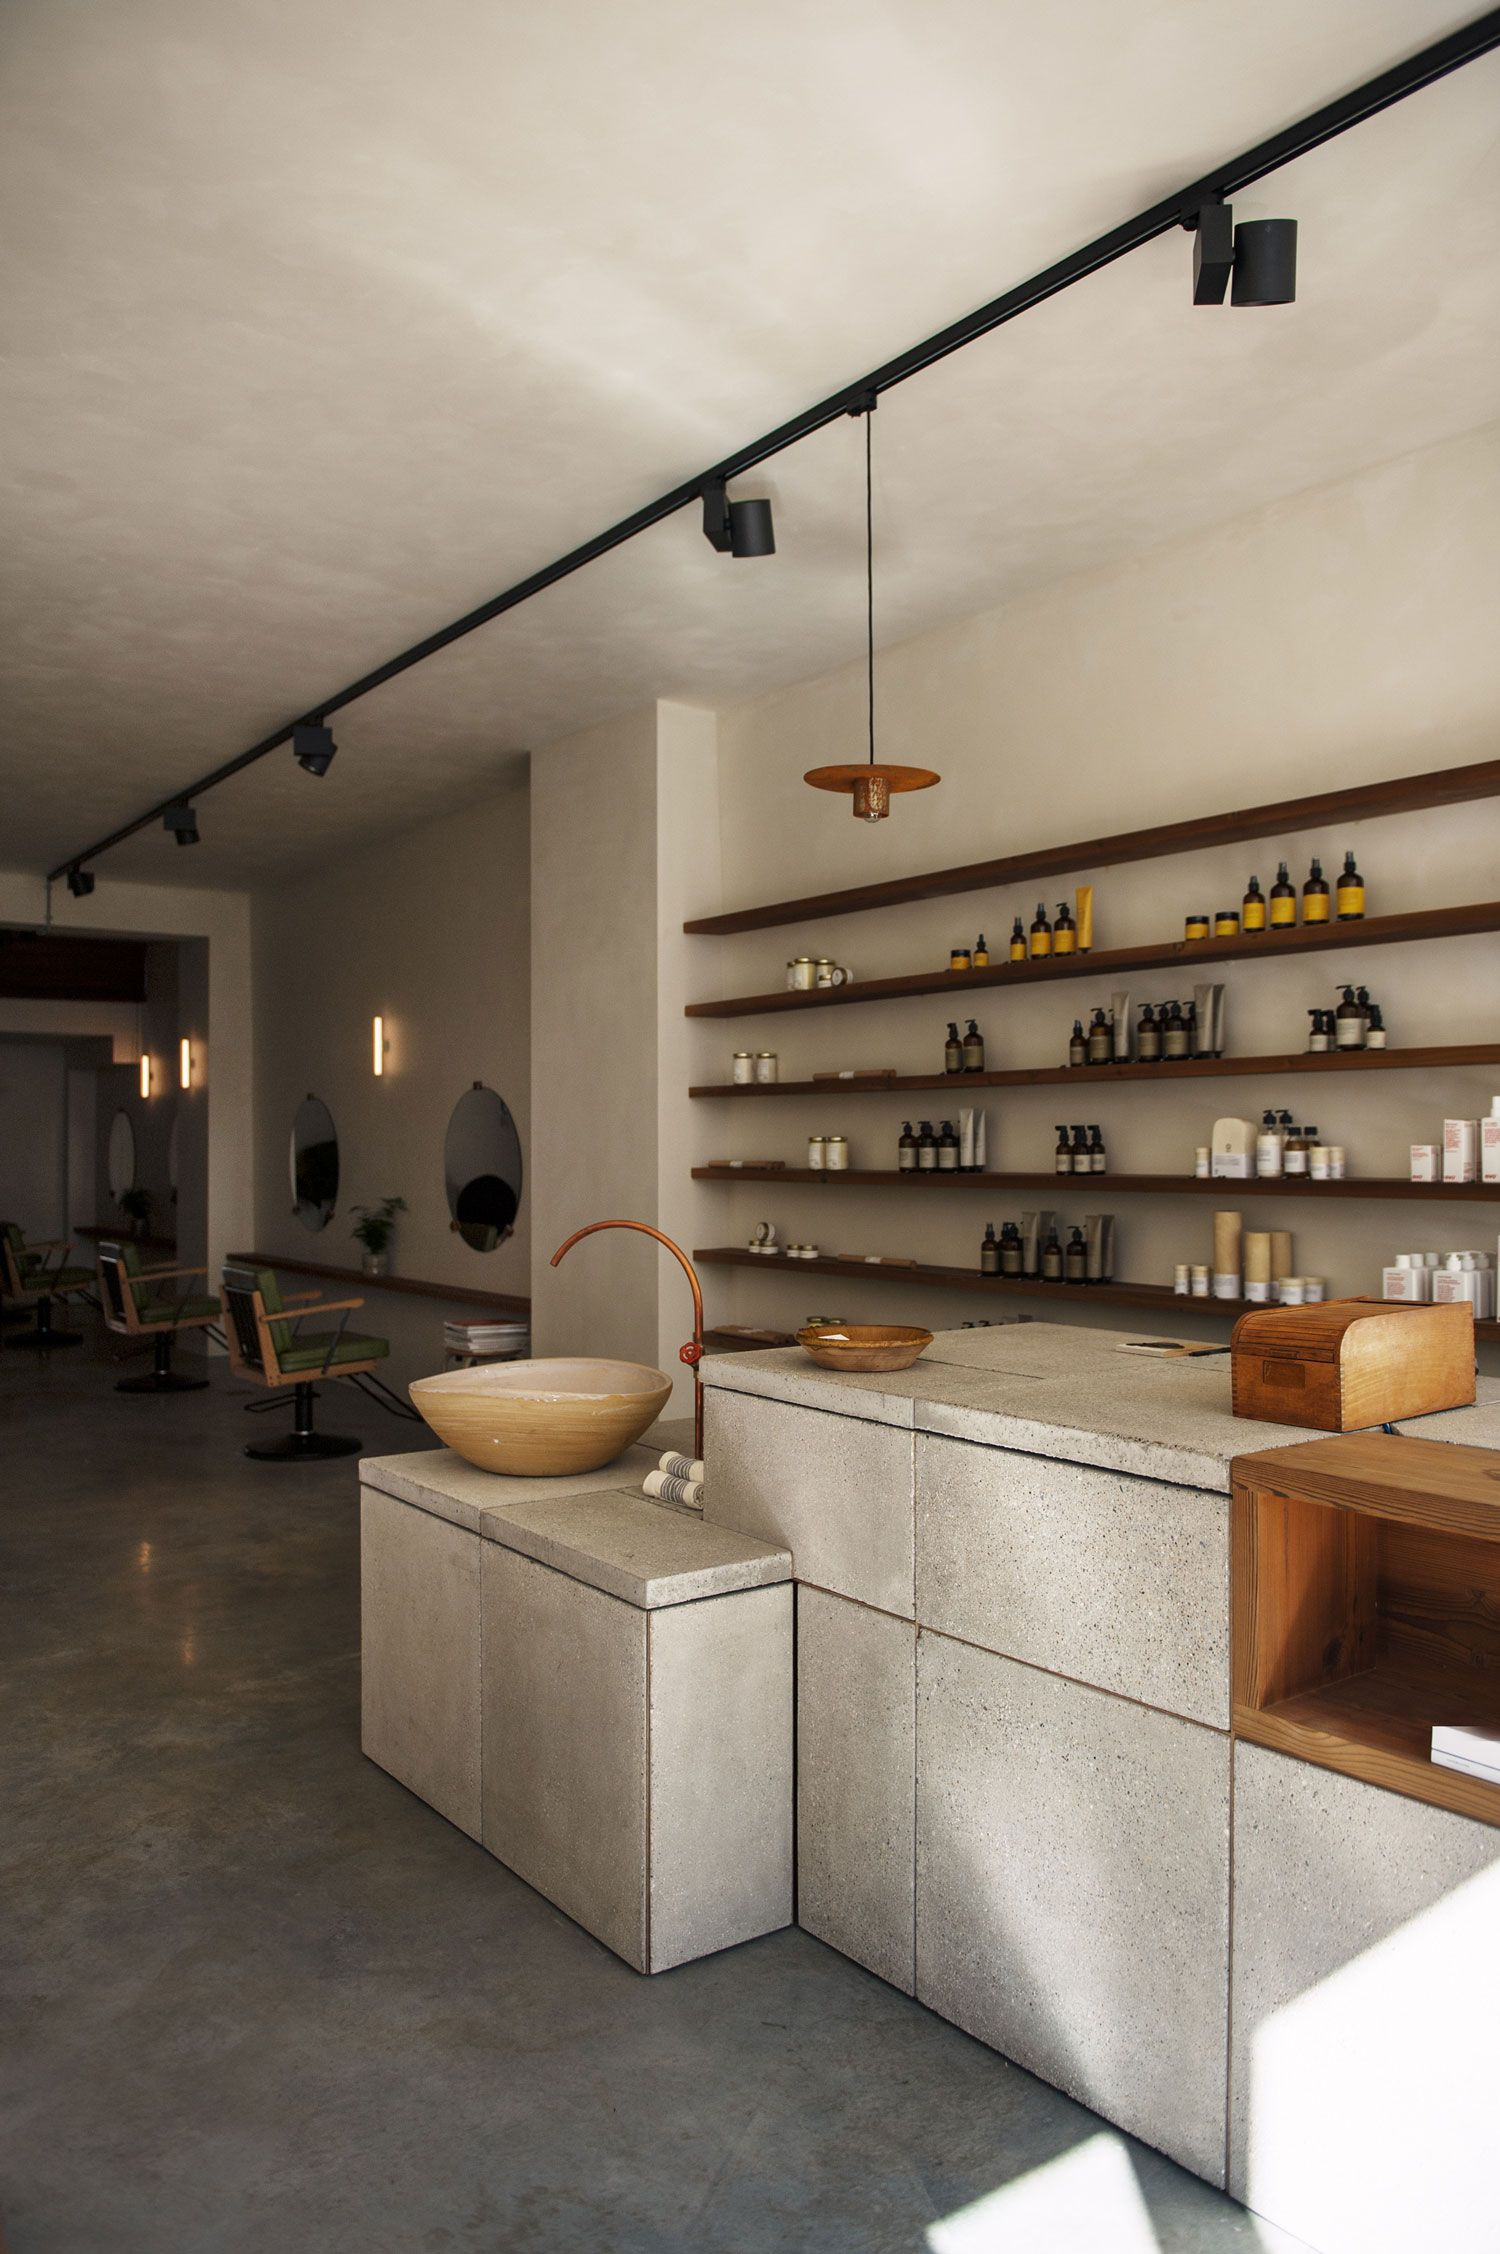 ISU Hair Salon in Antwerp, Belgium by Going East | Yellowtrace